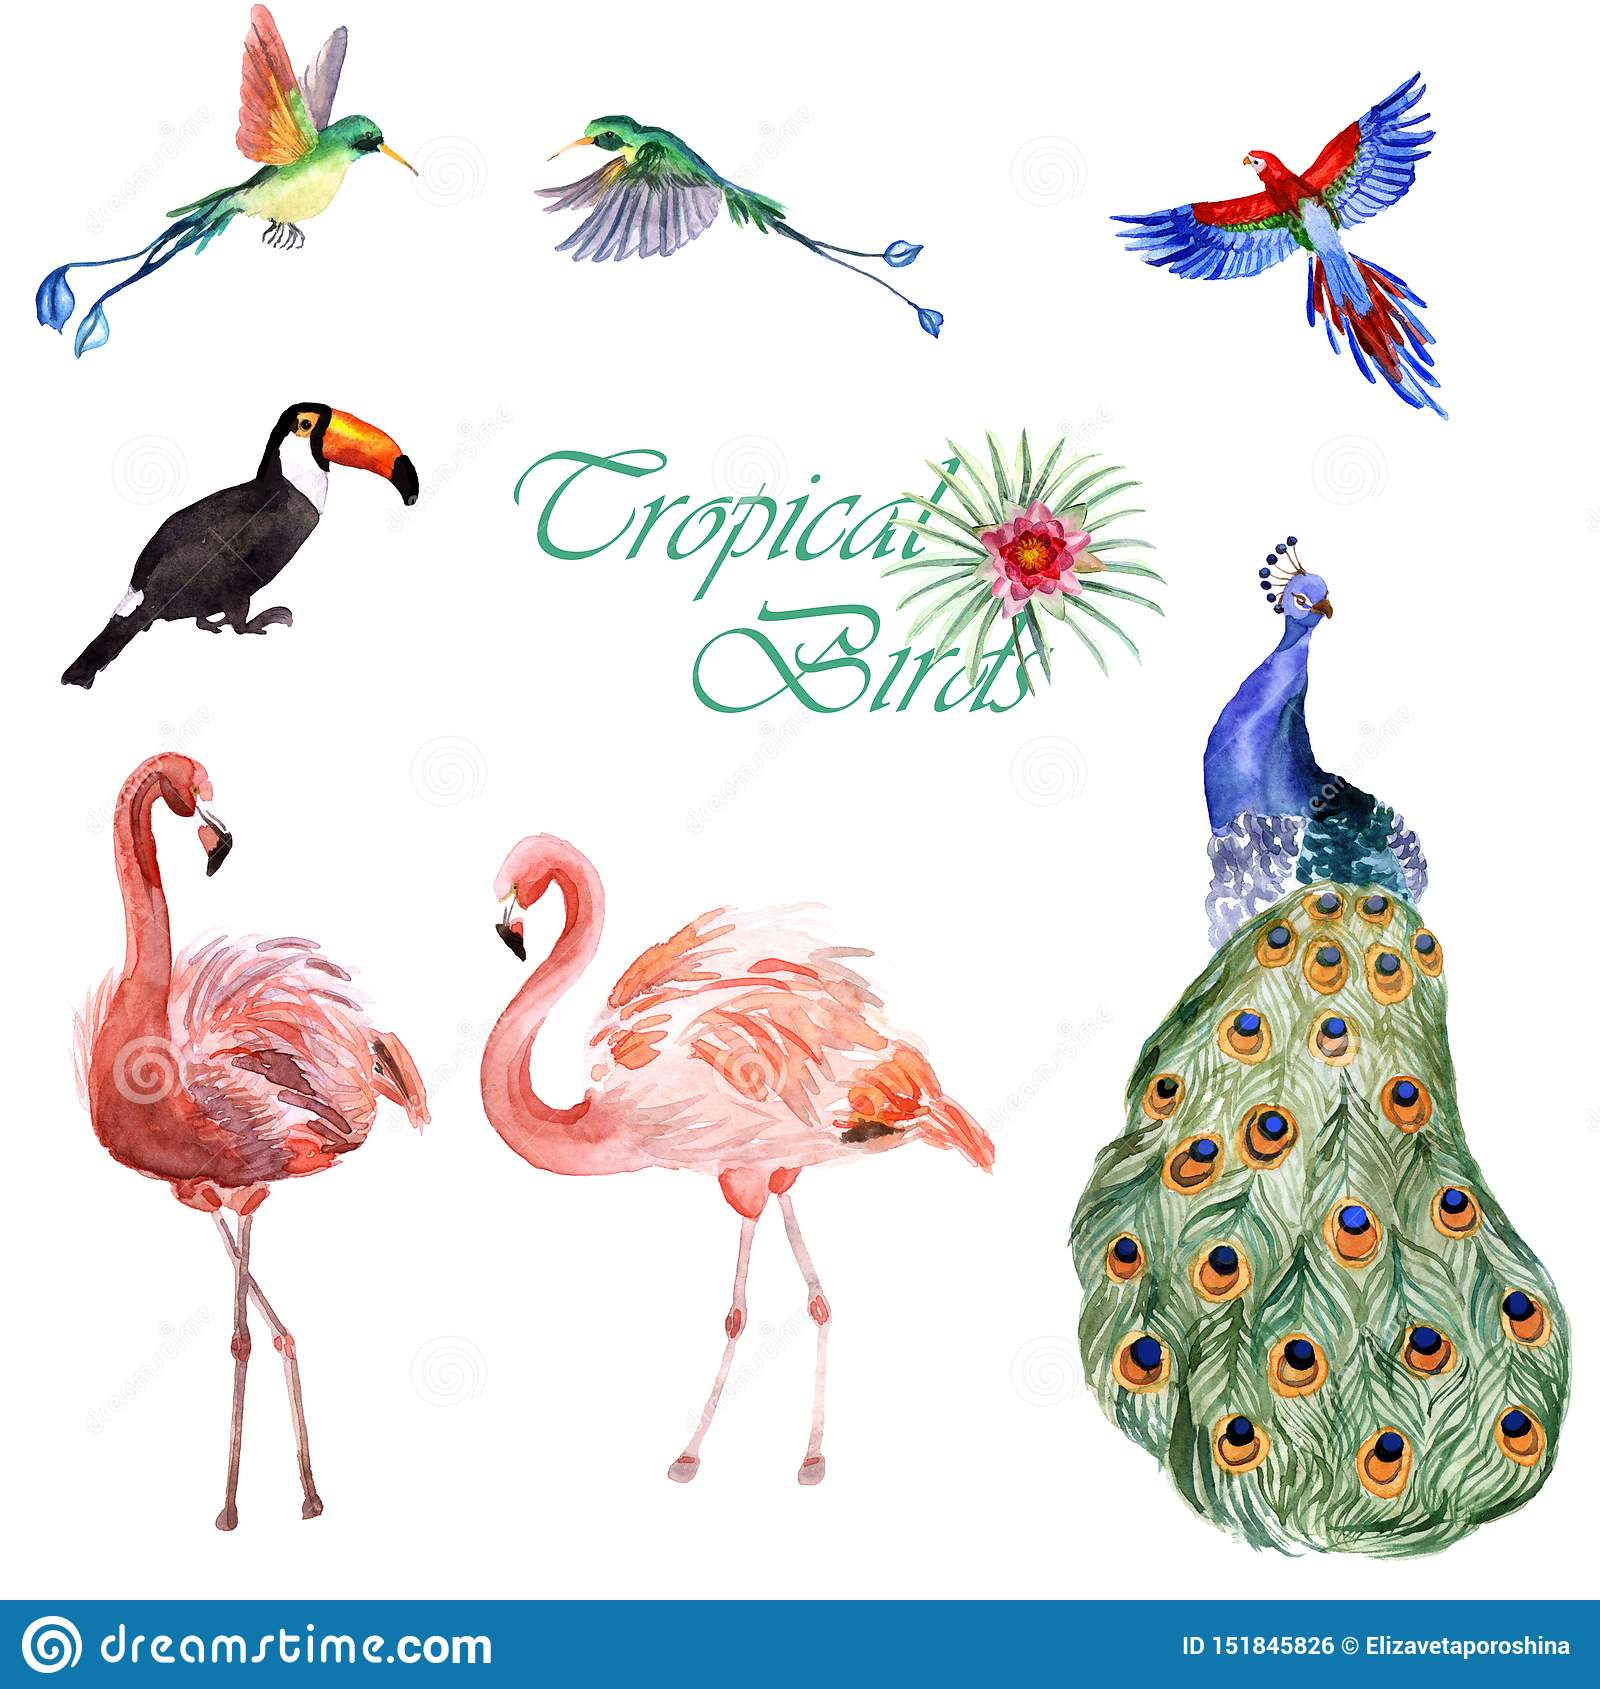 Watercolor collection of tropical birds isolated on a white background